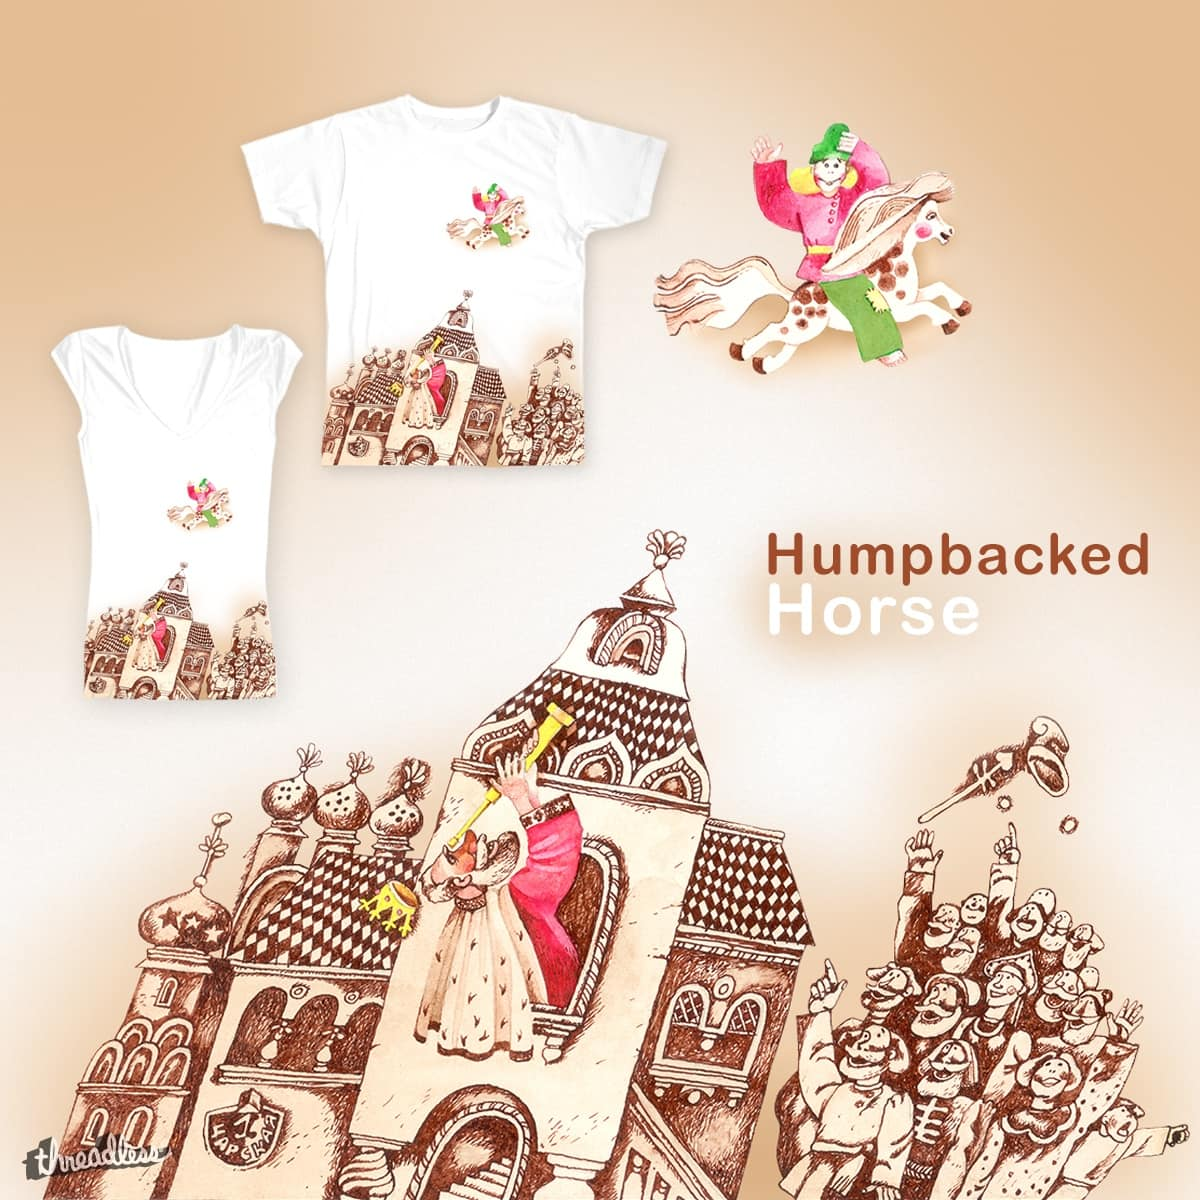 The Little Humpbacked Horse by IlyaB on Threadless